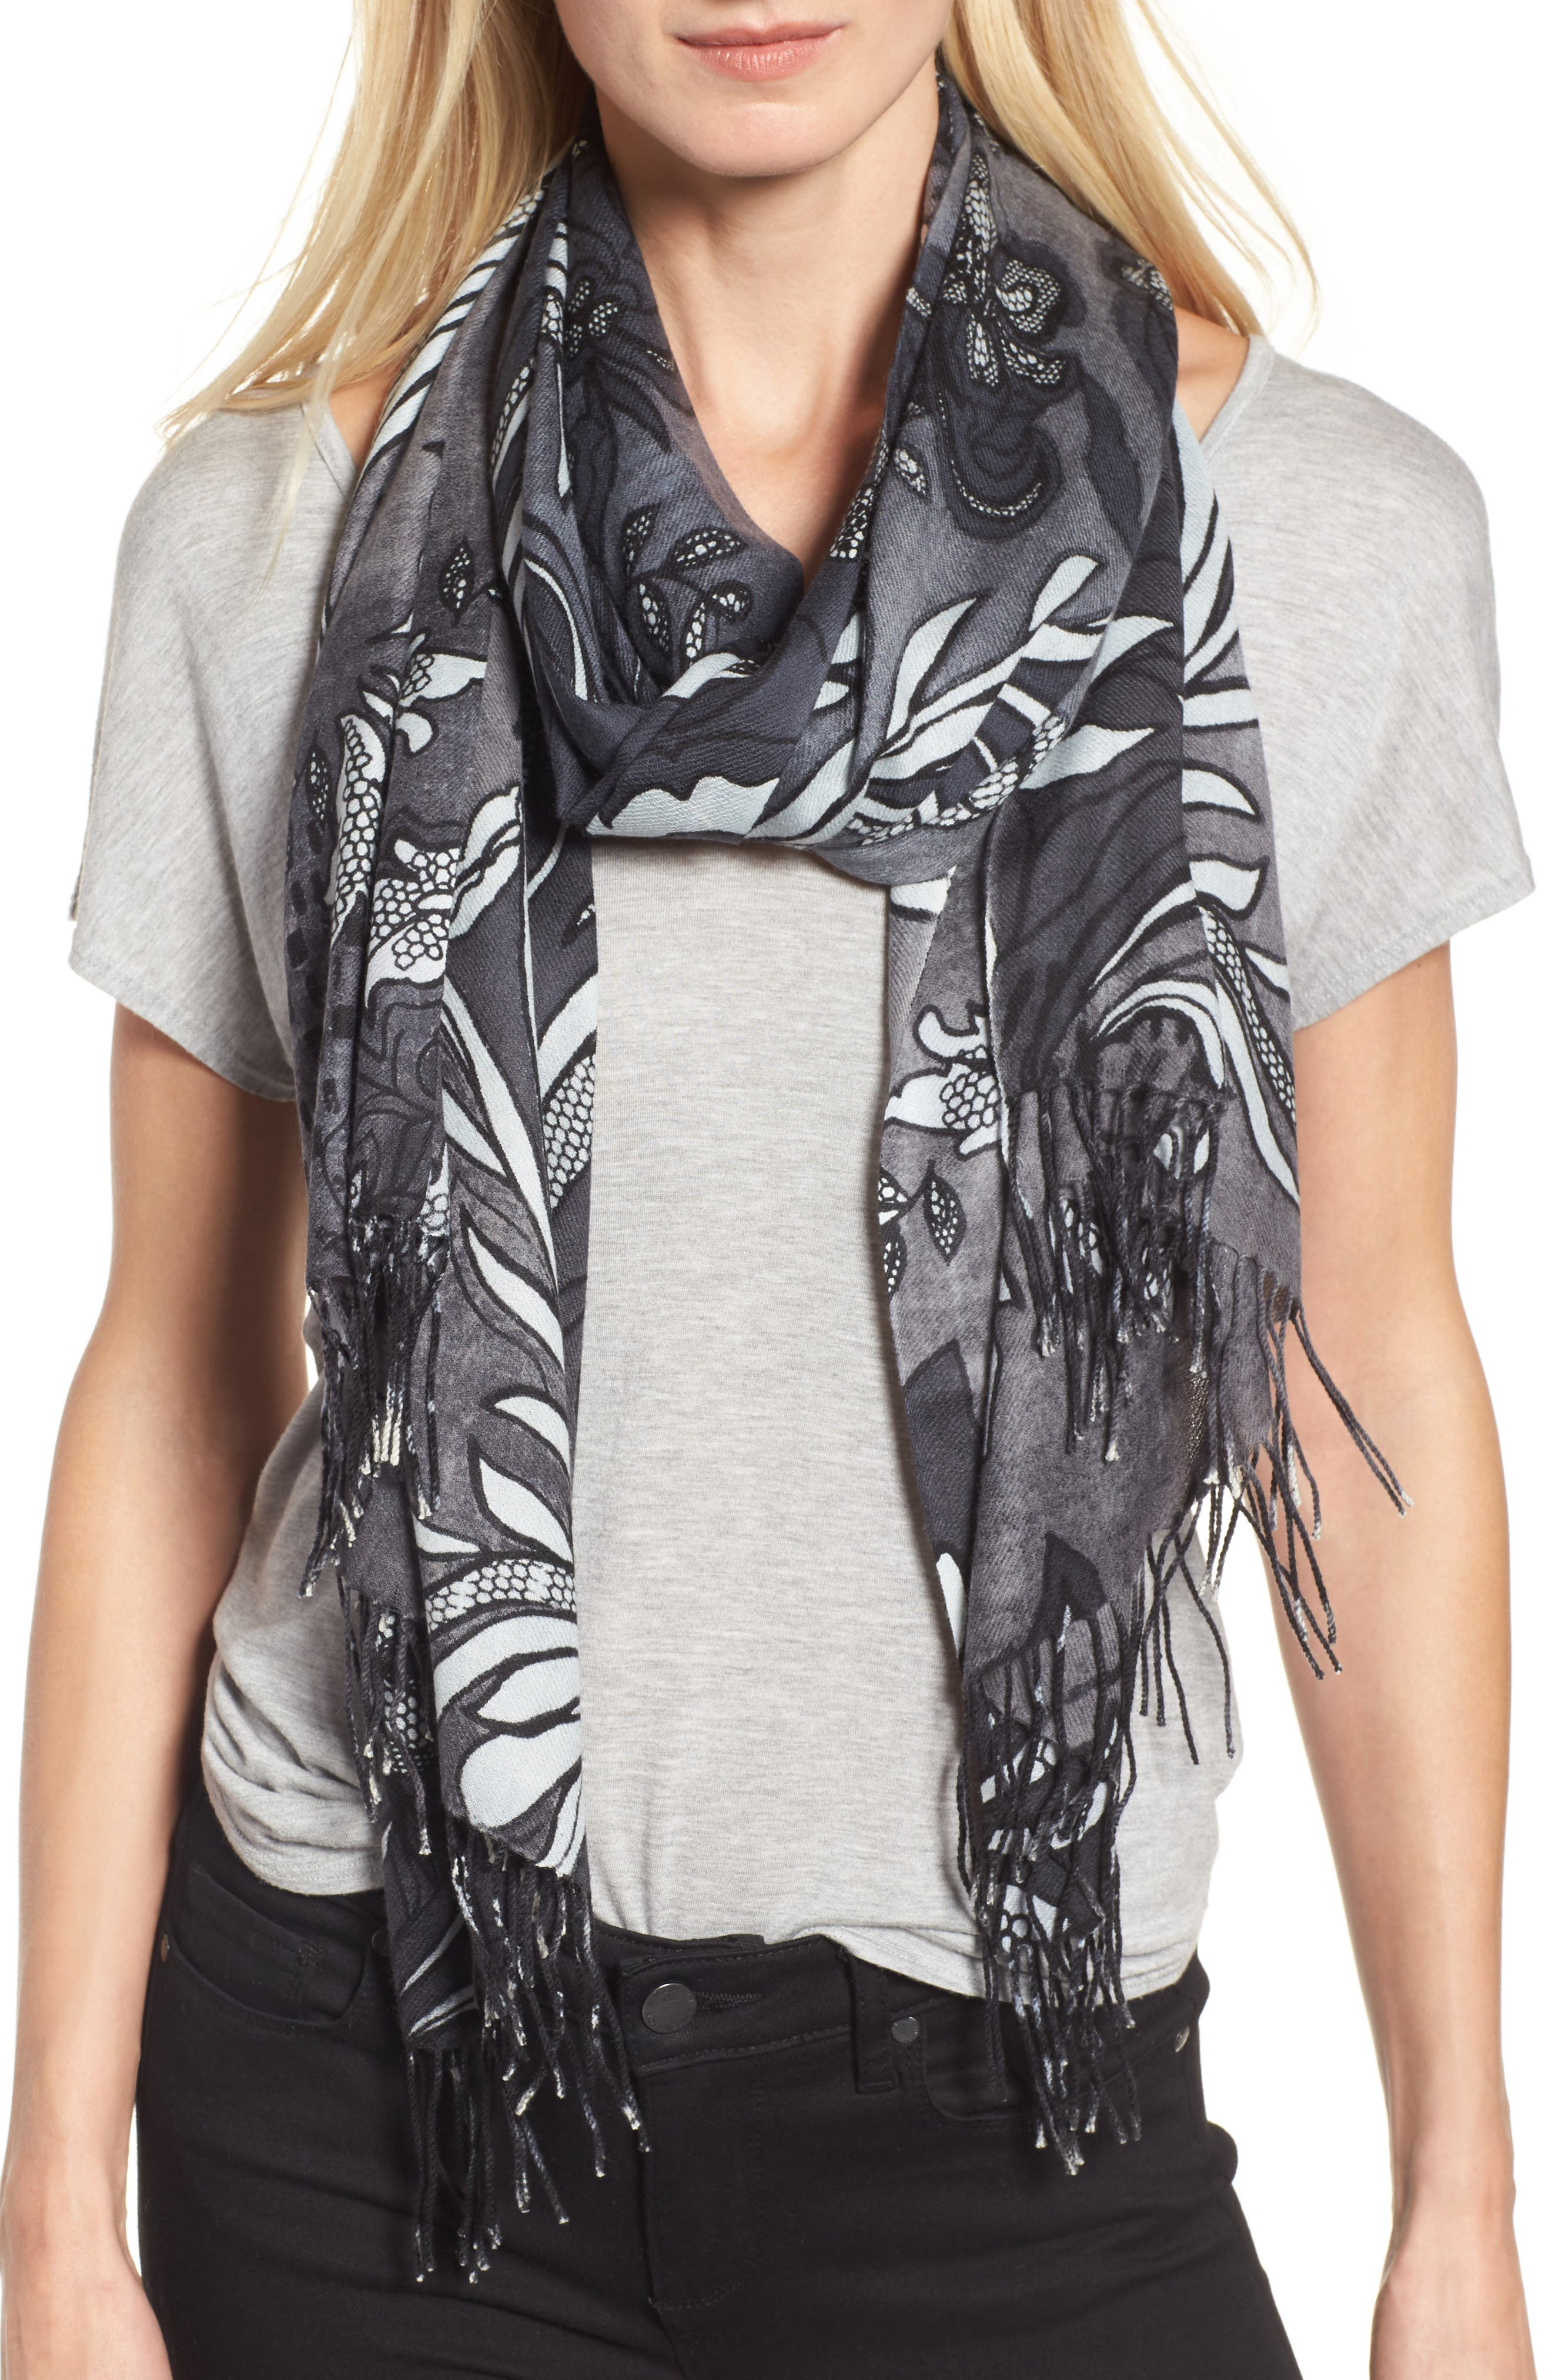 Viennese Floral Tissue Wool & Cashmere Scarf,                             Main thumbnail 1, color,                             001